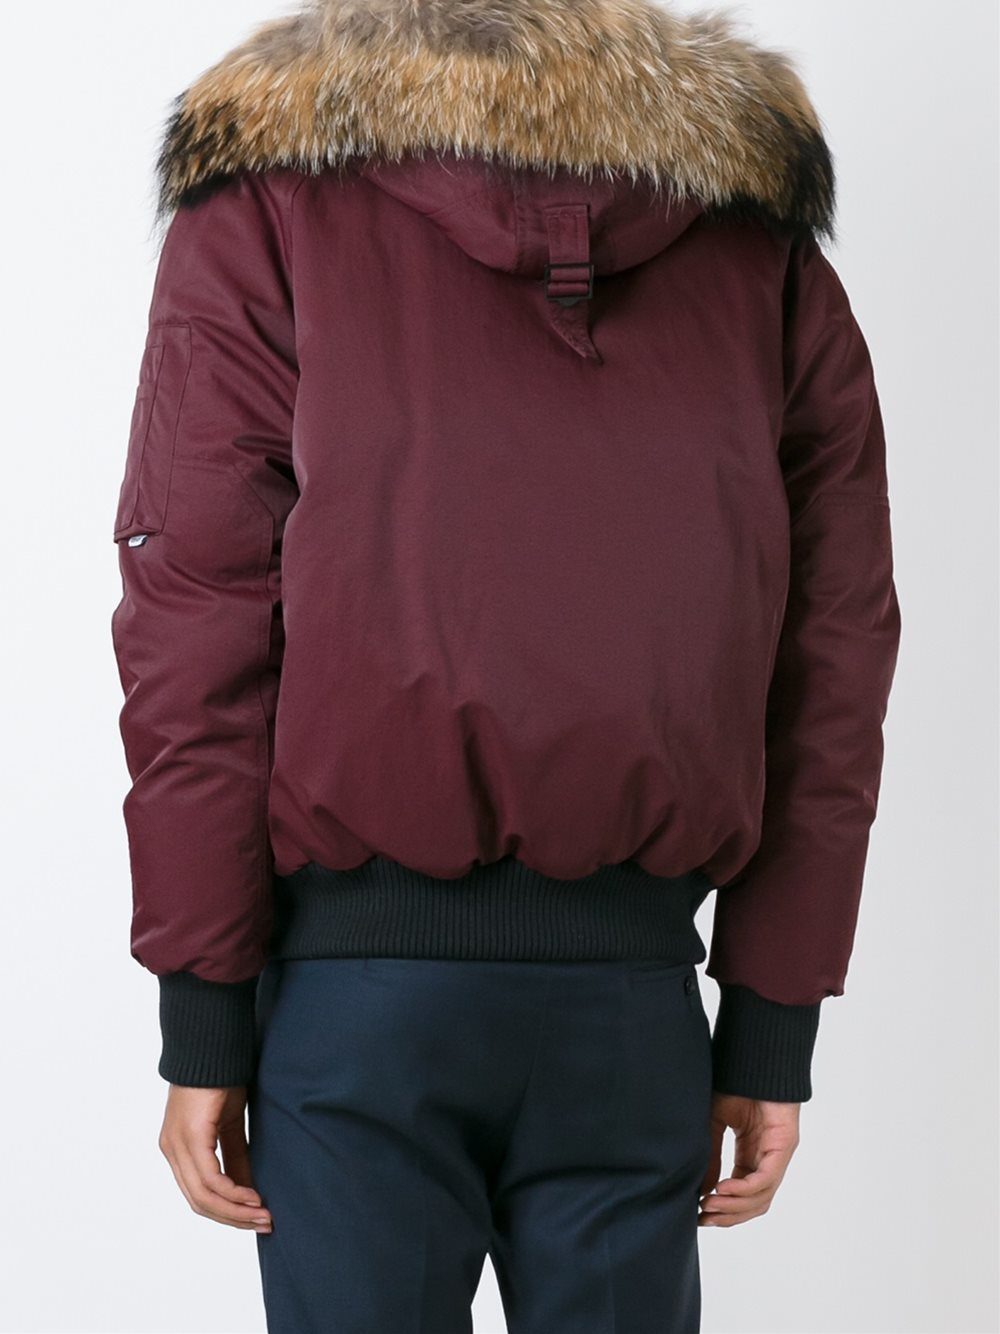 KENZO Synthetic 'tech' Puffer Jacket in Red (Blue) for Men